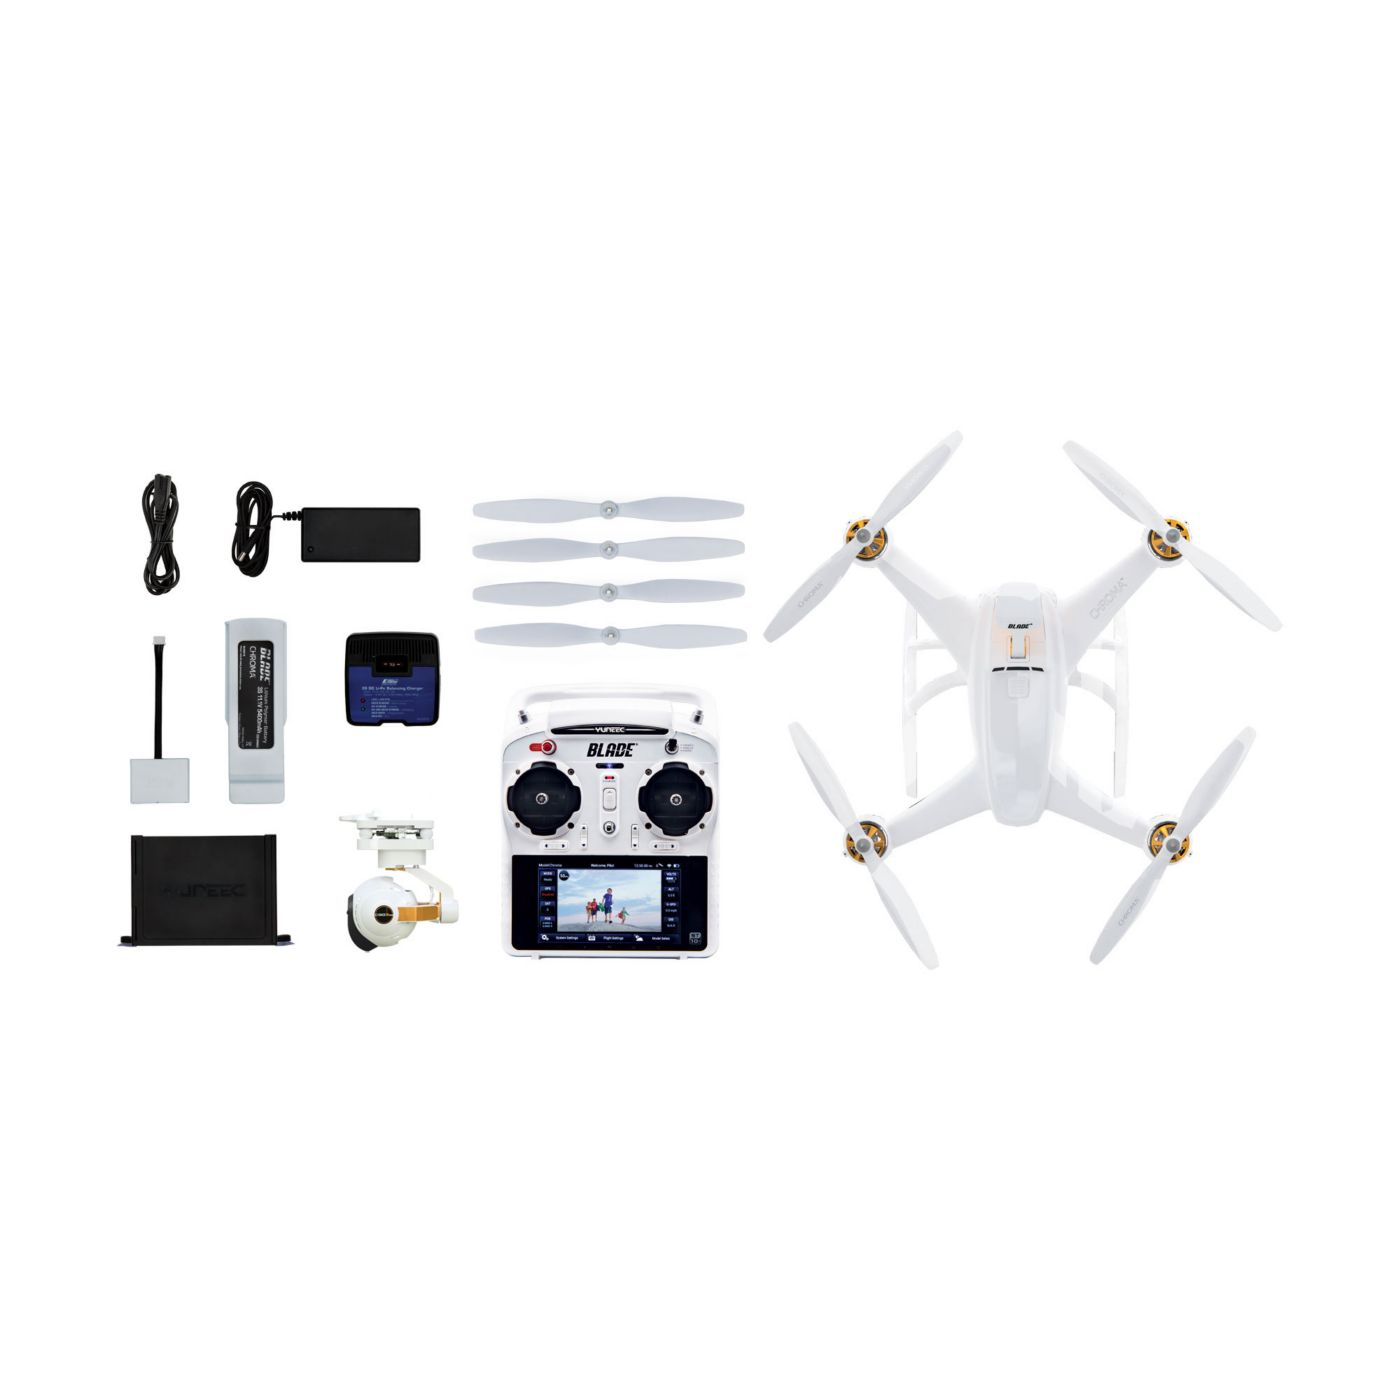 BLH8675_a14 blade chroma™ camera drone quadcopter with 4k cgo3 and st10 Simple Electrical Wiring Diagrams at fashall.co